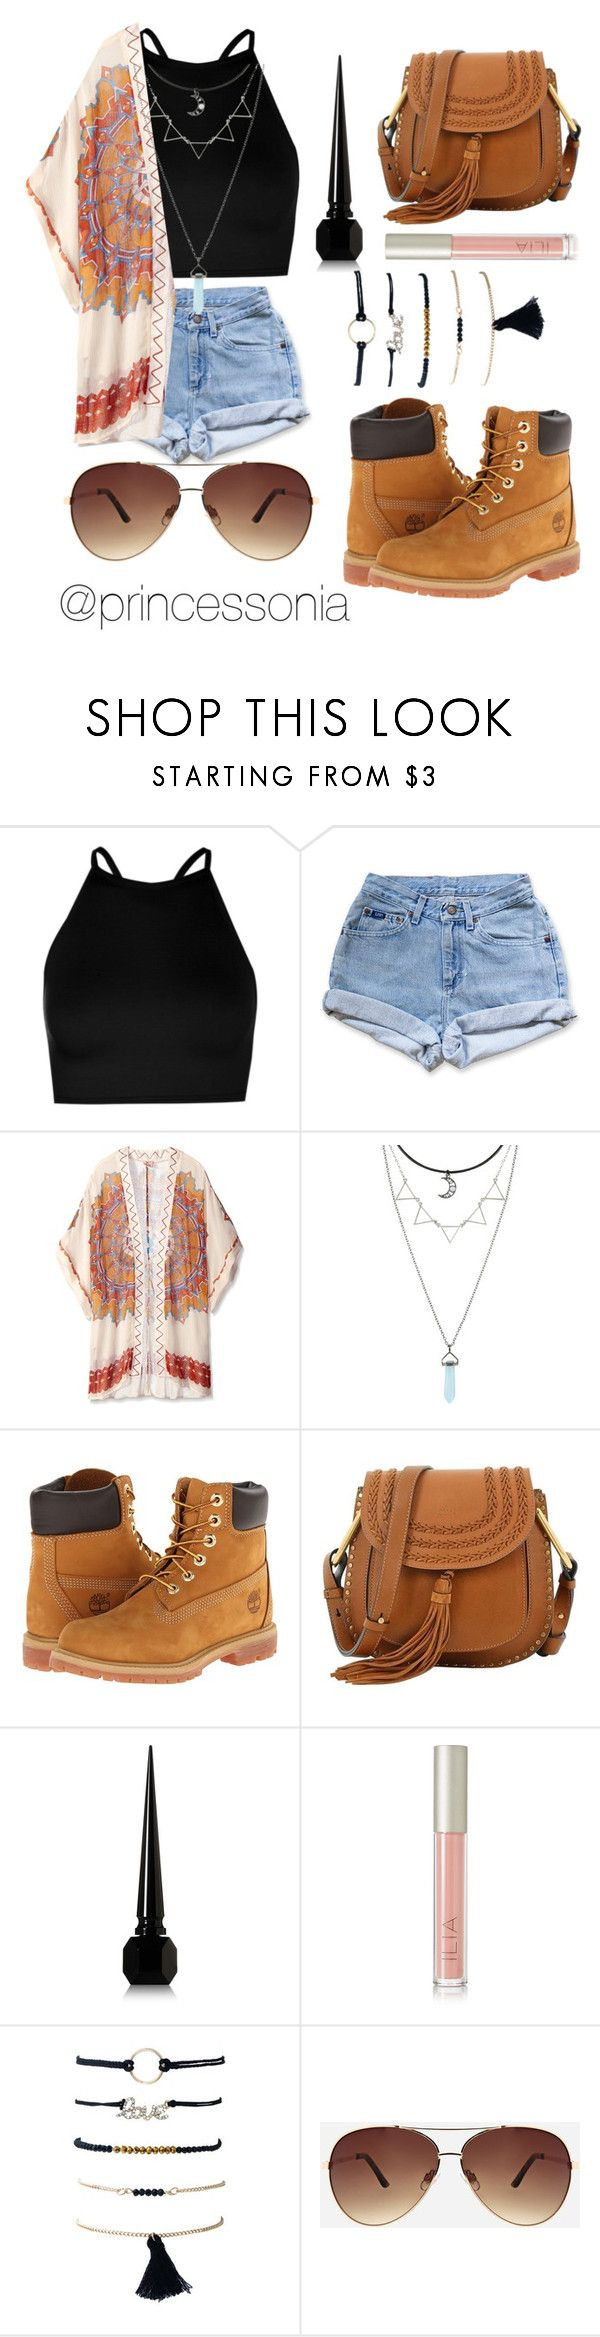 """Untitled #179"" by princessonia ❤ liked on Polyvore featuring Boohoo, Levi's, Theodora & Callum, Hot Topic, Timberland, Chloé, Christian Louboutin, Ilia and Ashley Stewart"